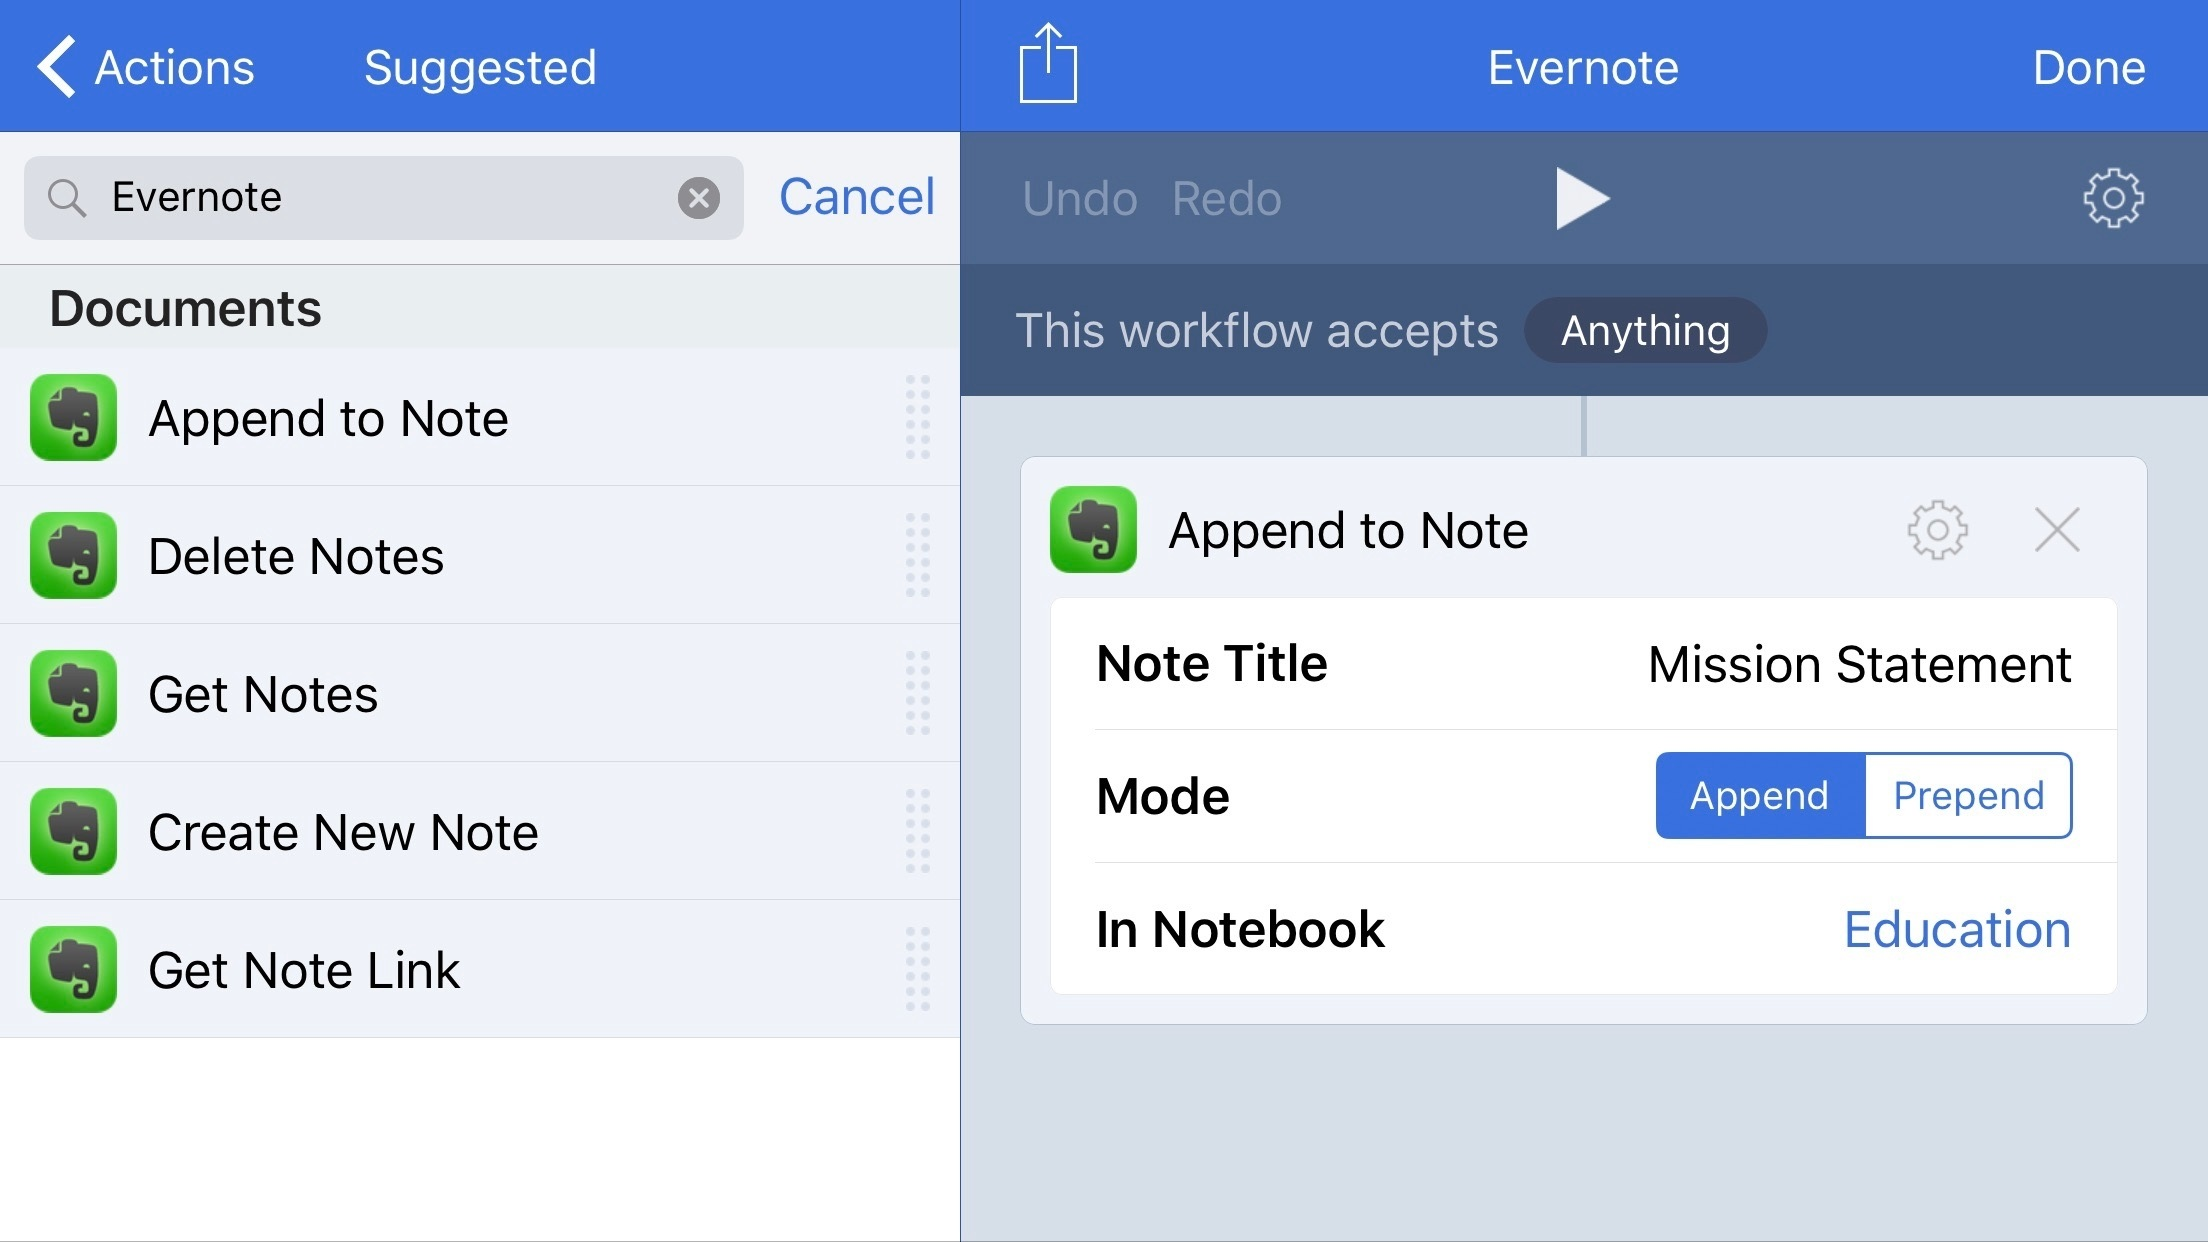 Evernote's Workflow actions.